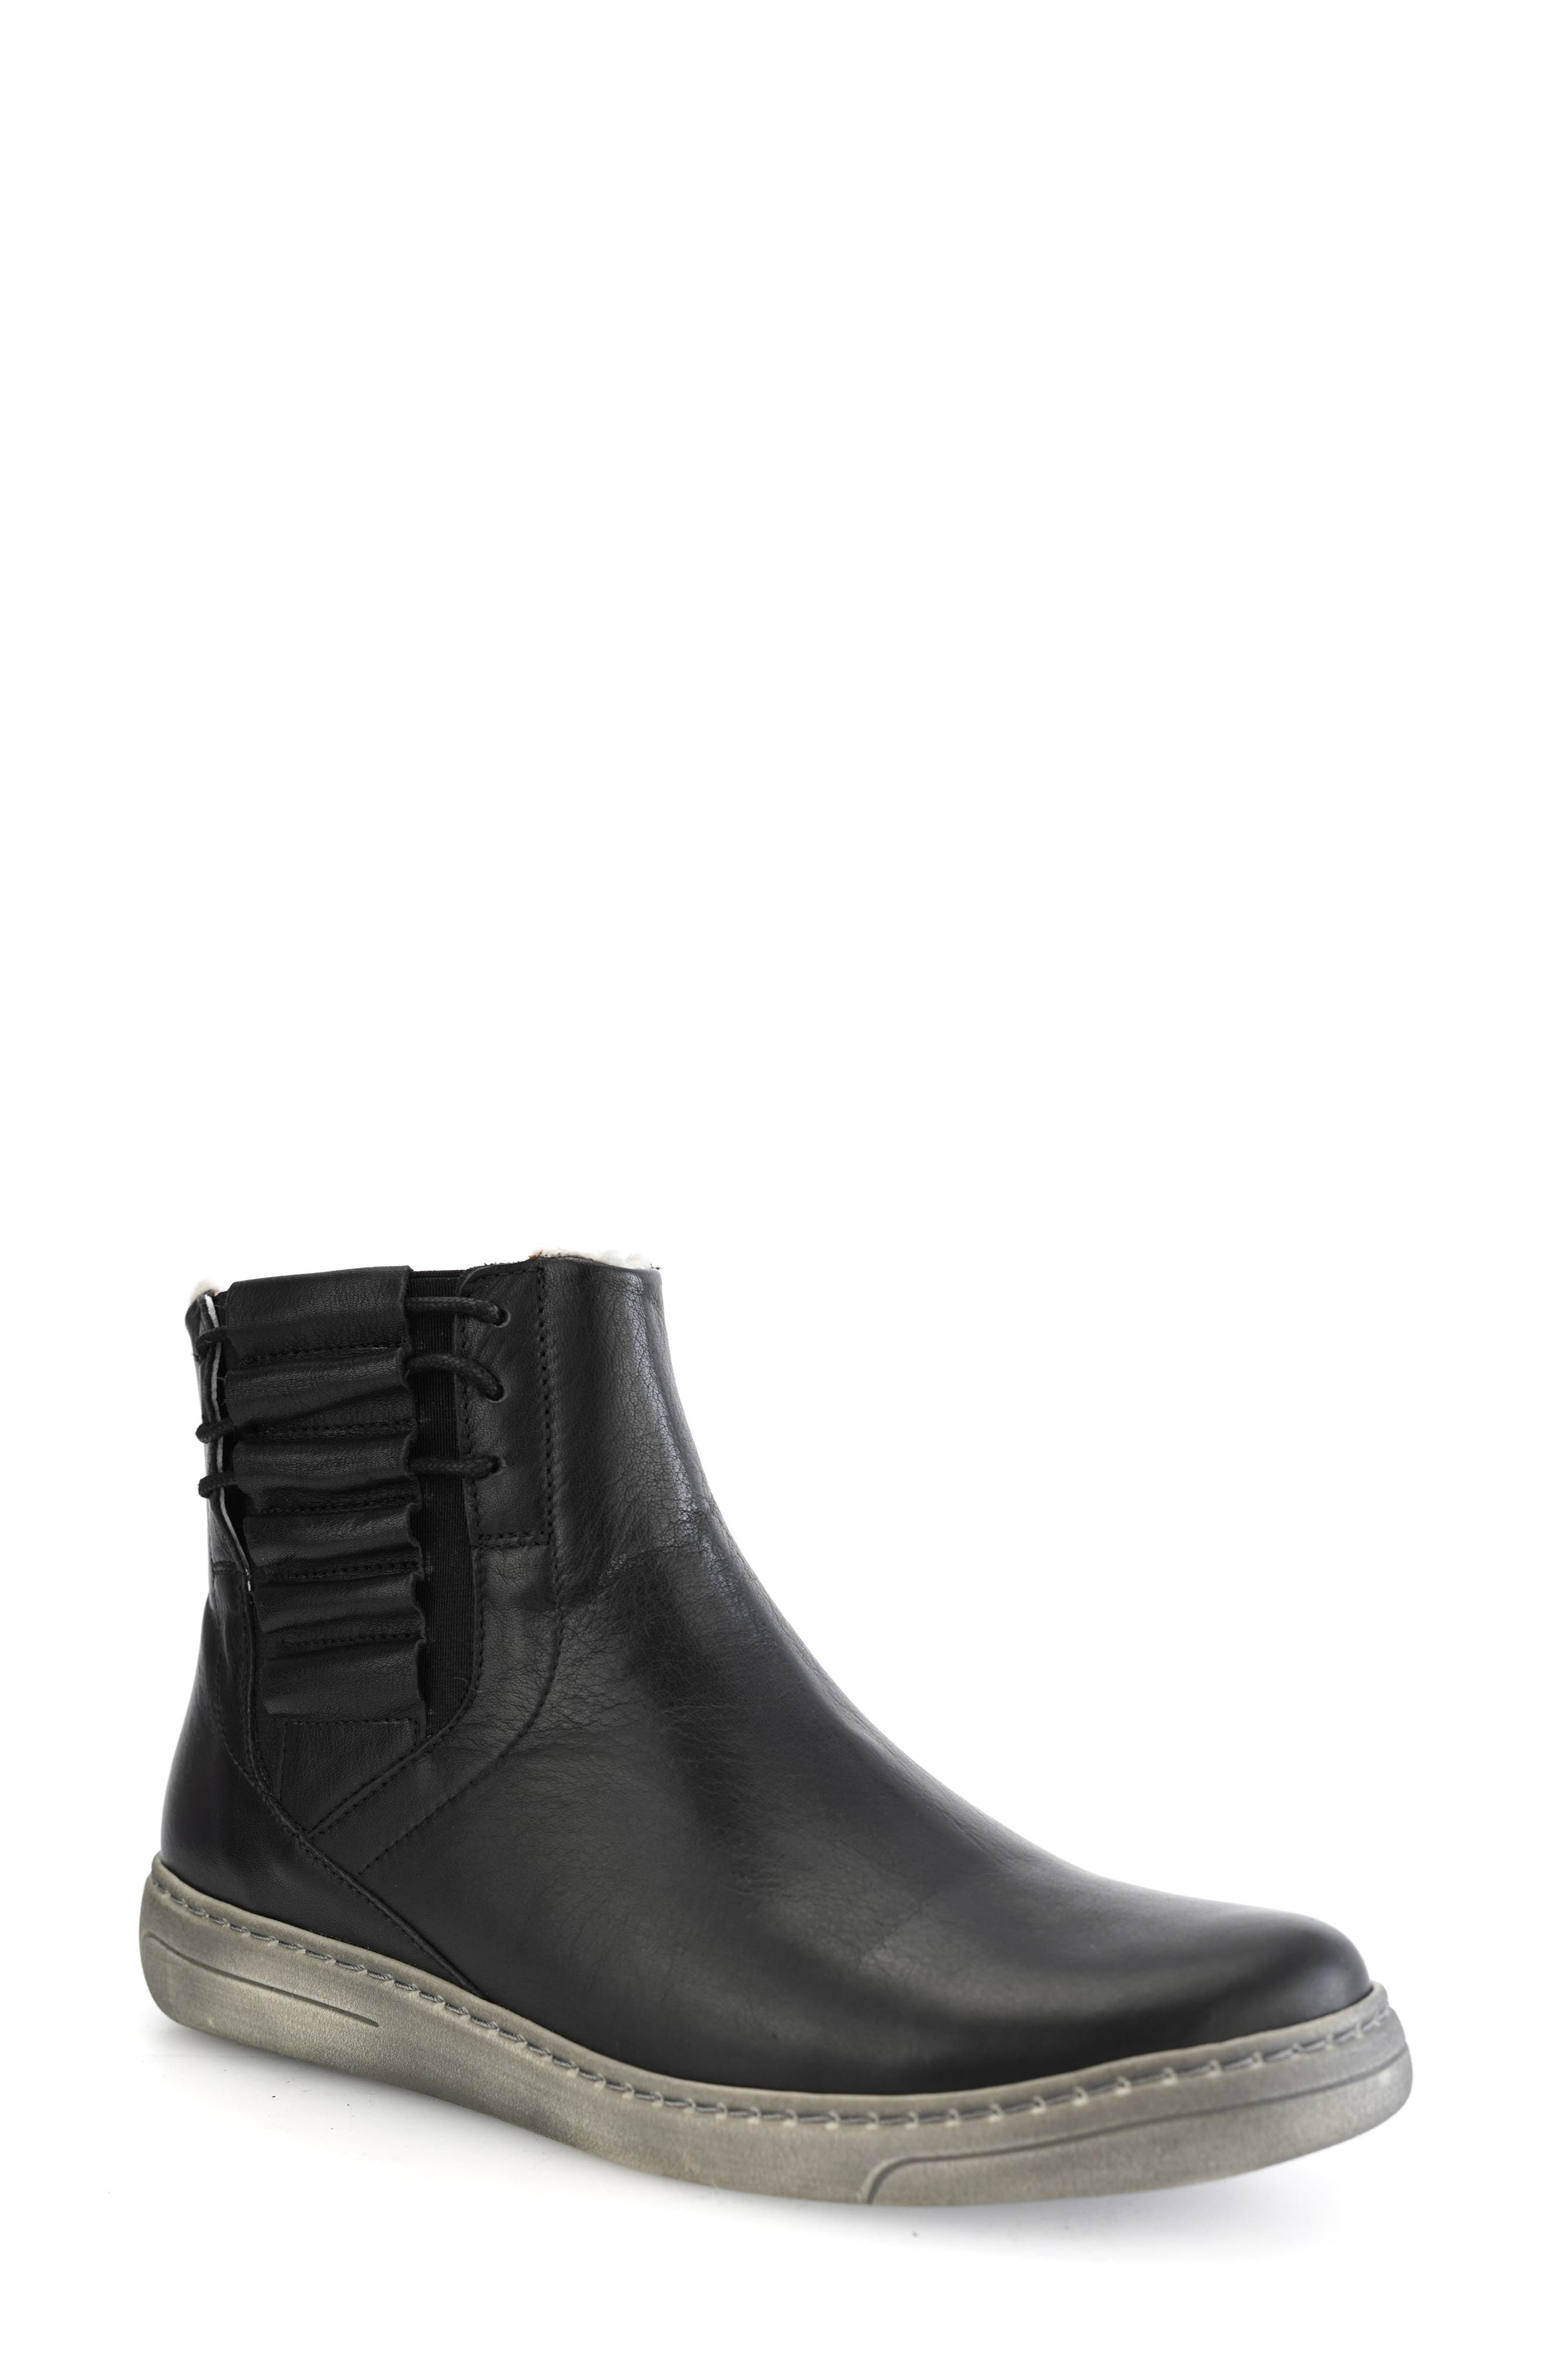 Fern Wool Lined Leather Boot